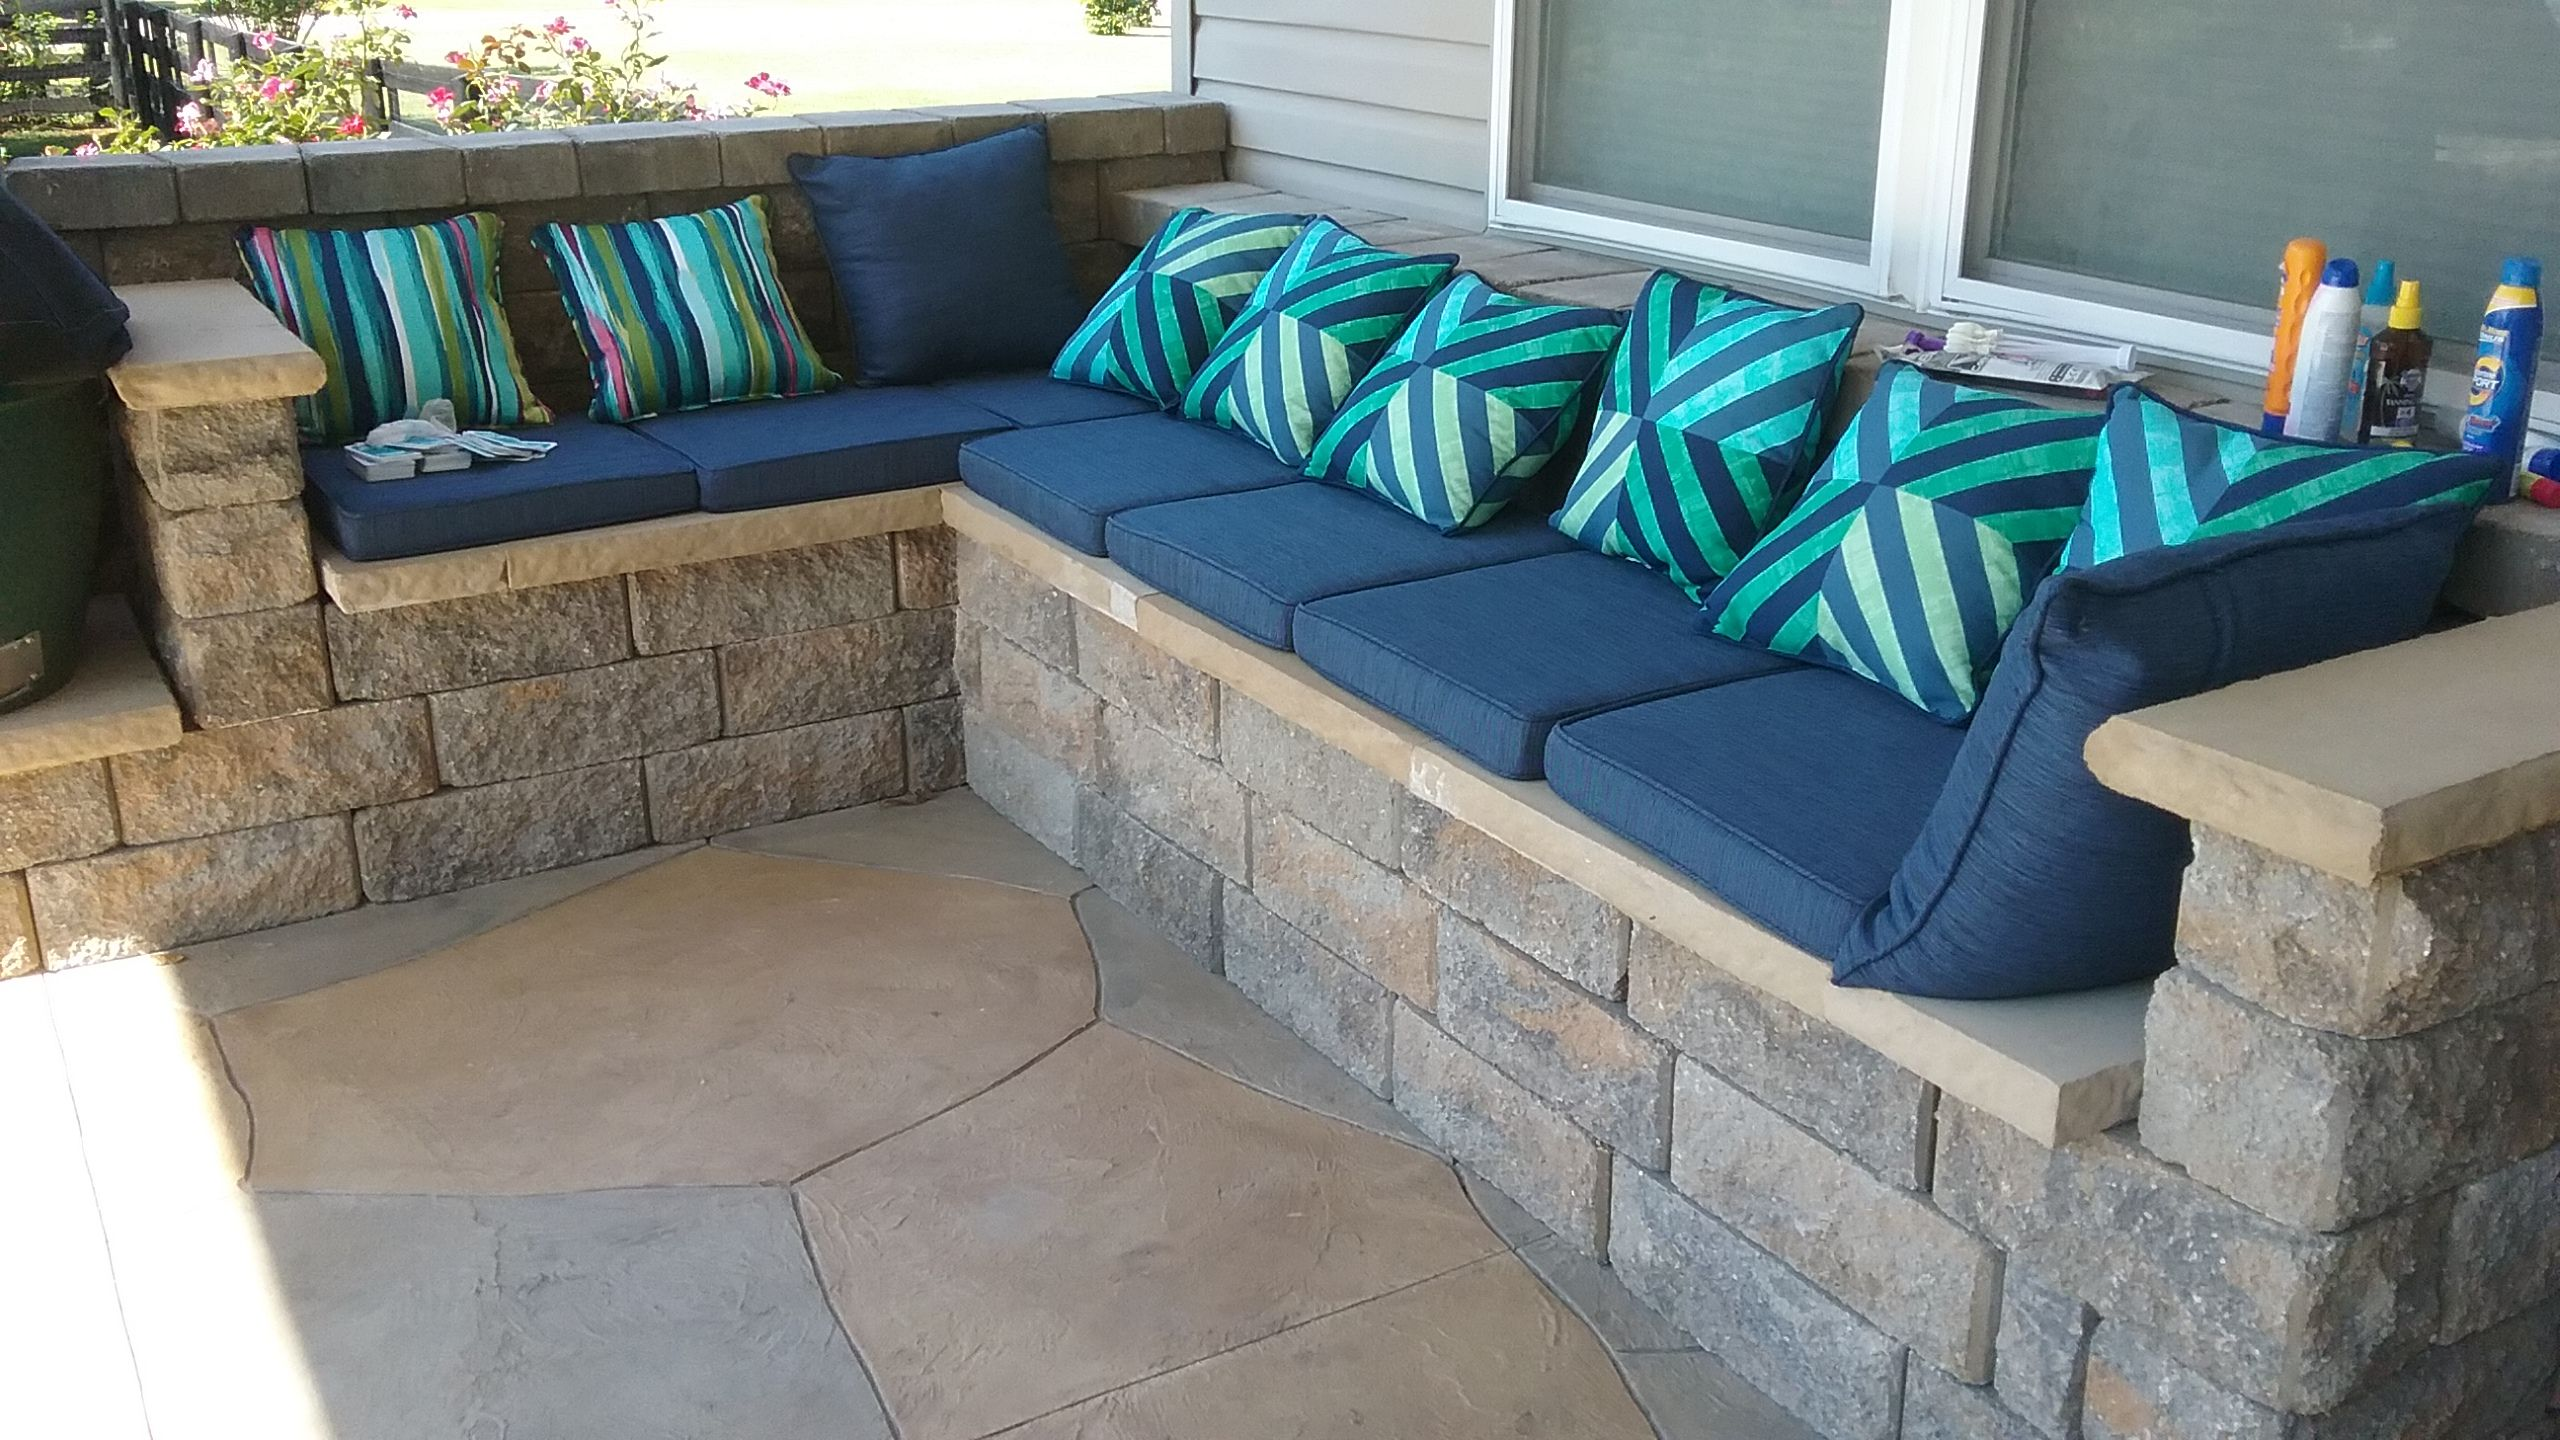 Built In Seating That Never Needs Painting Using Allan Block